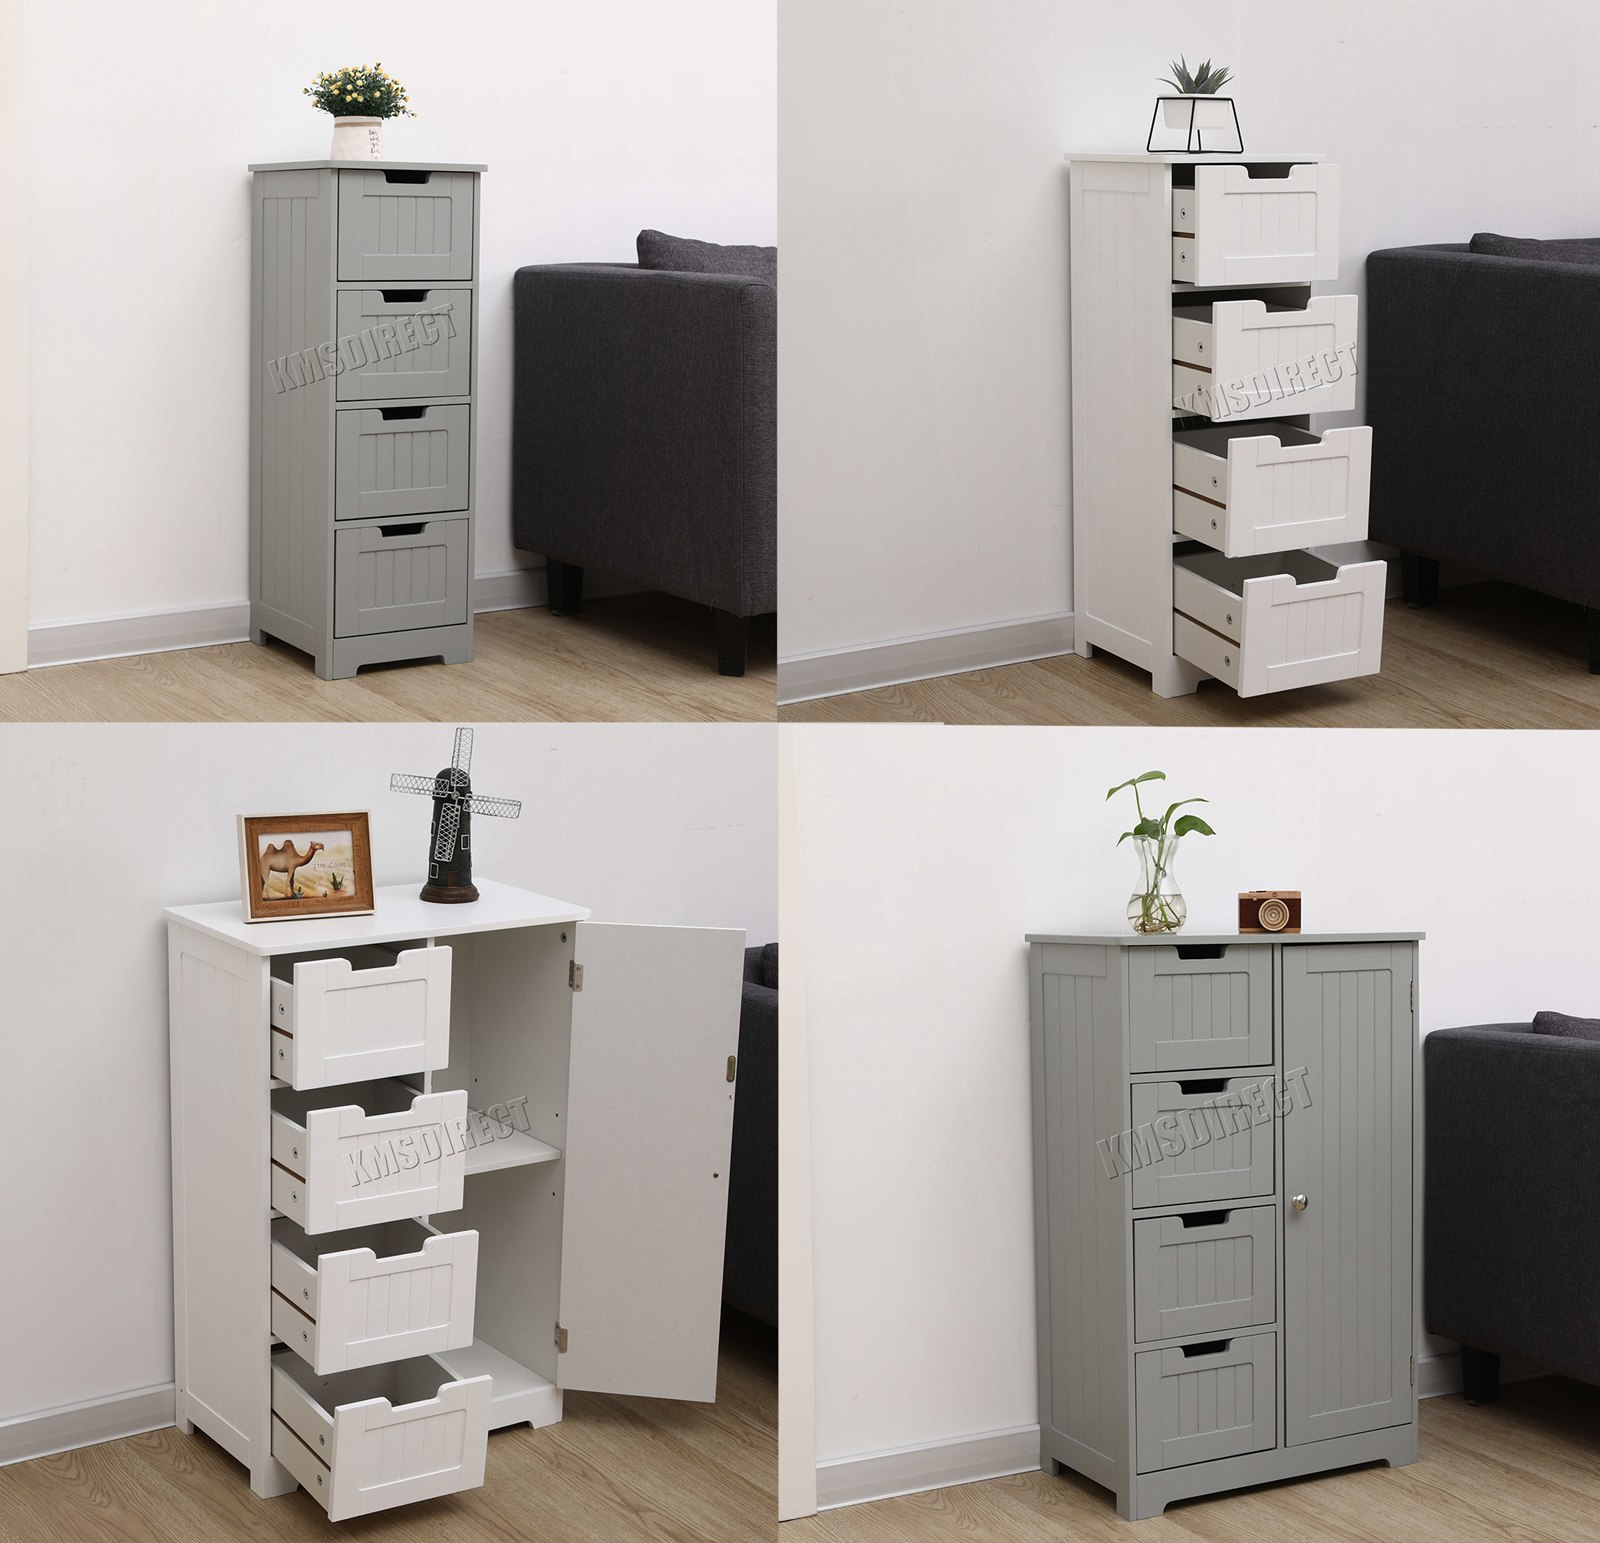 Bathroom Storage Cabinet Details About Westwood Bathroom Storage Cabinet Wooden 4 Drawer Cupboard Free Standing Unit